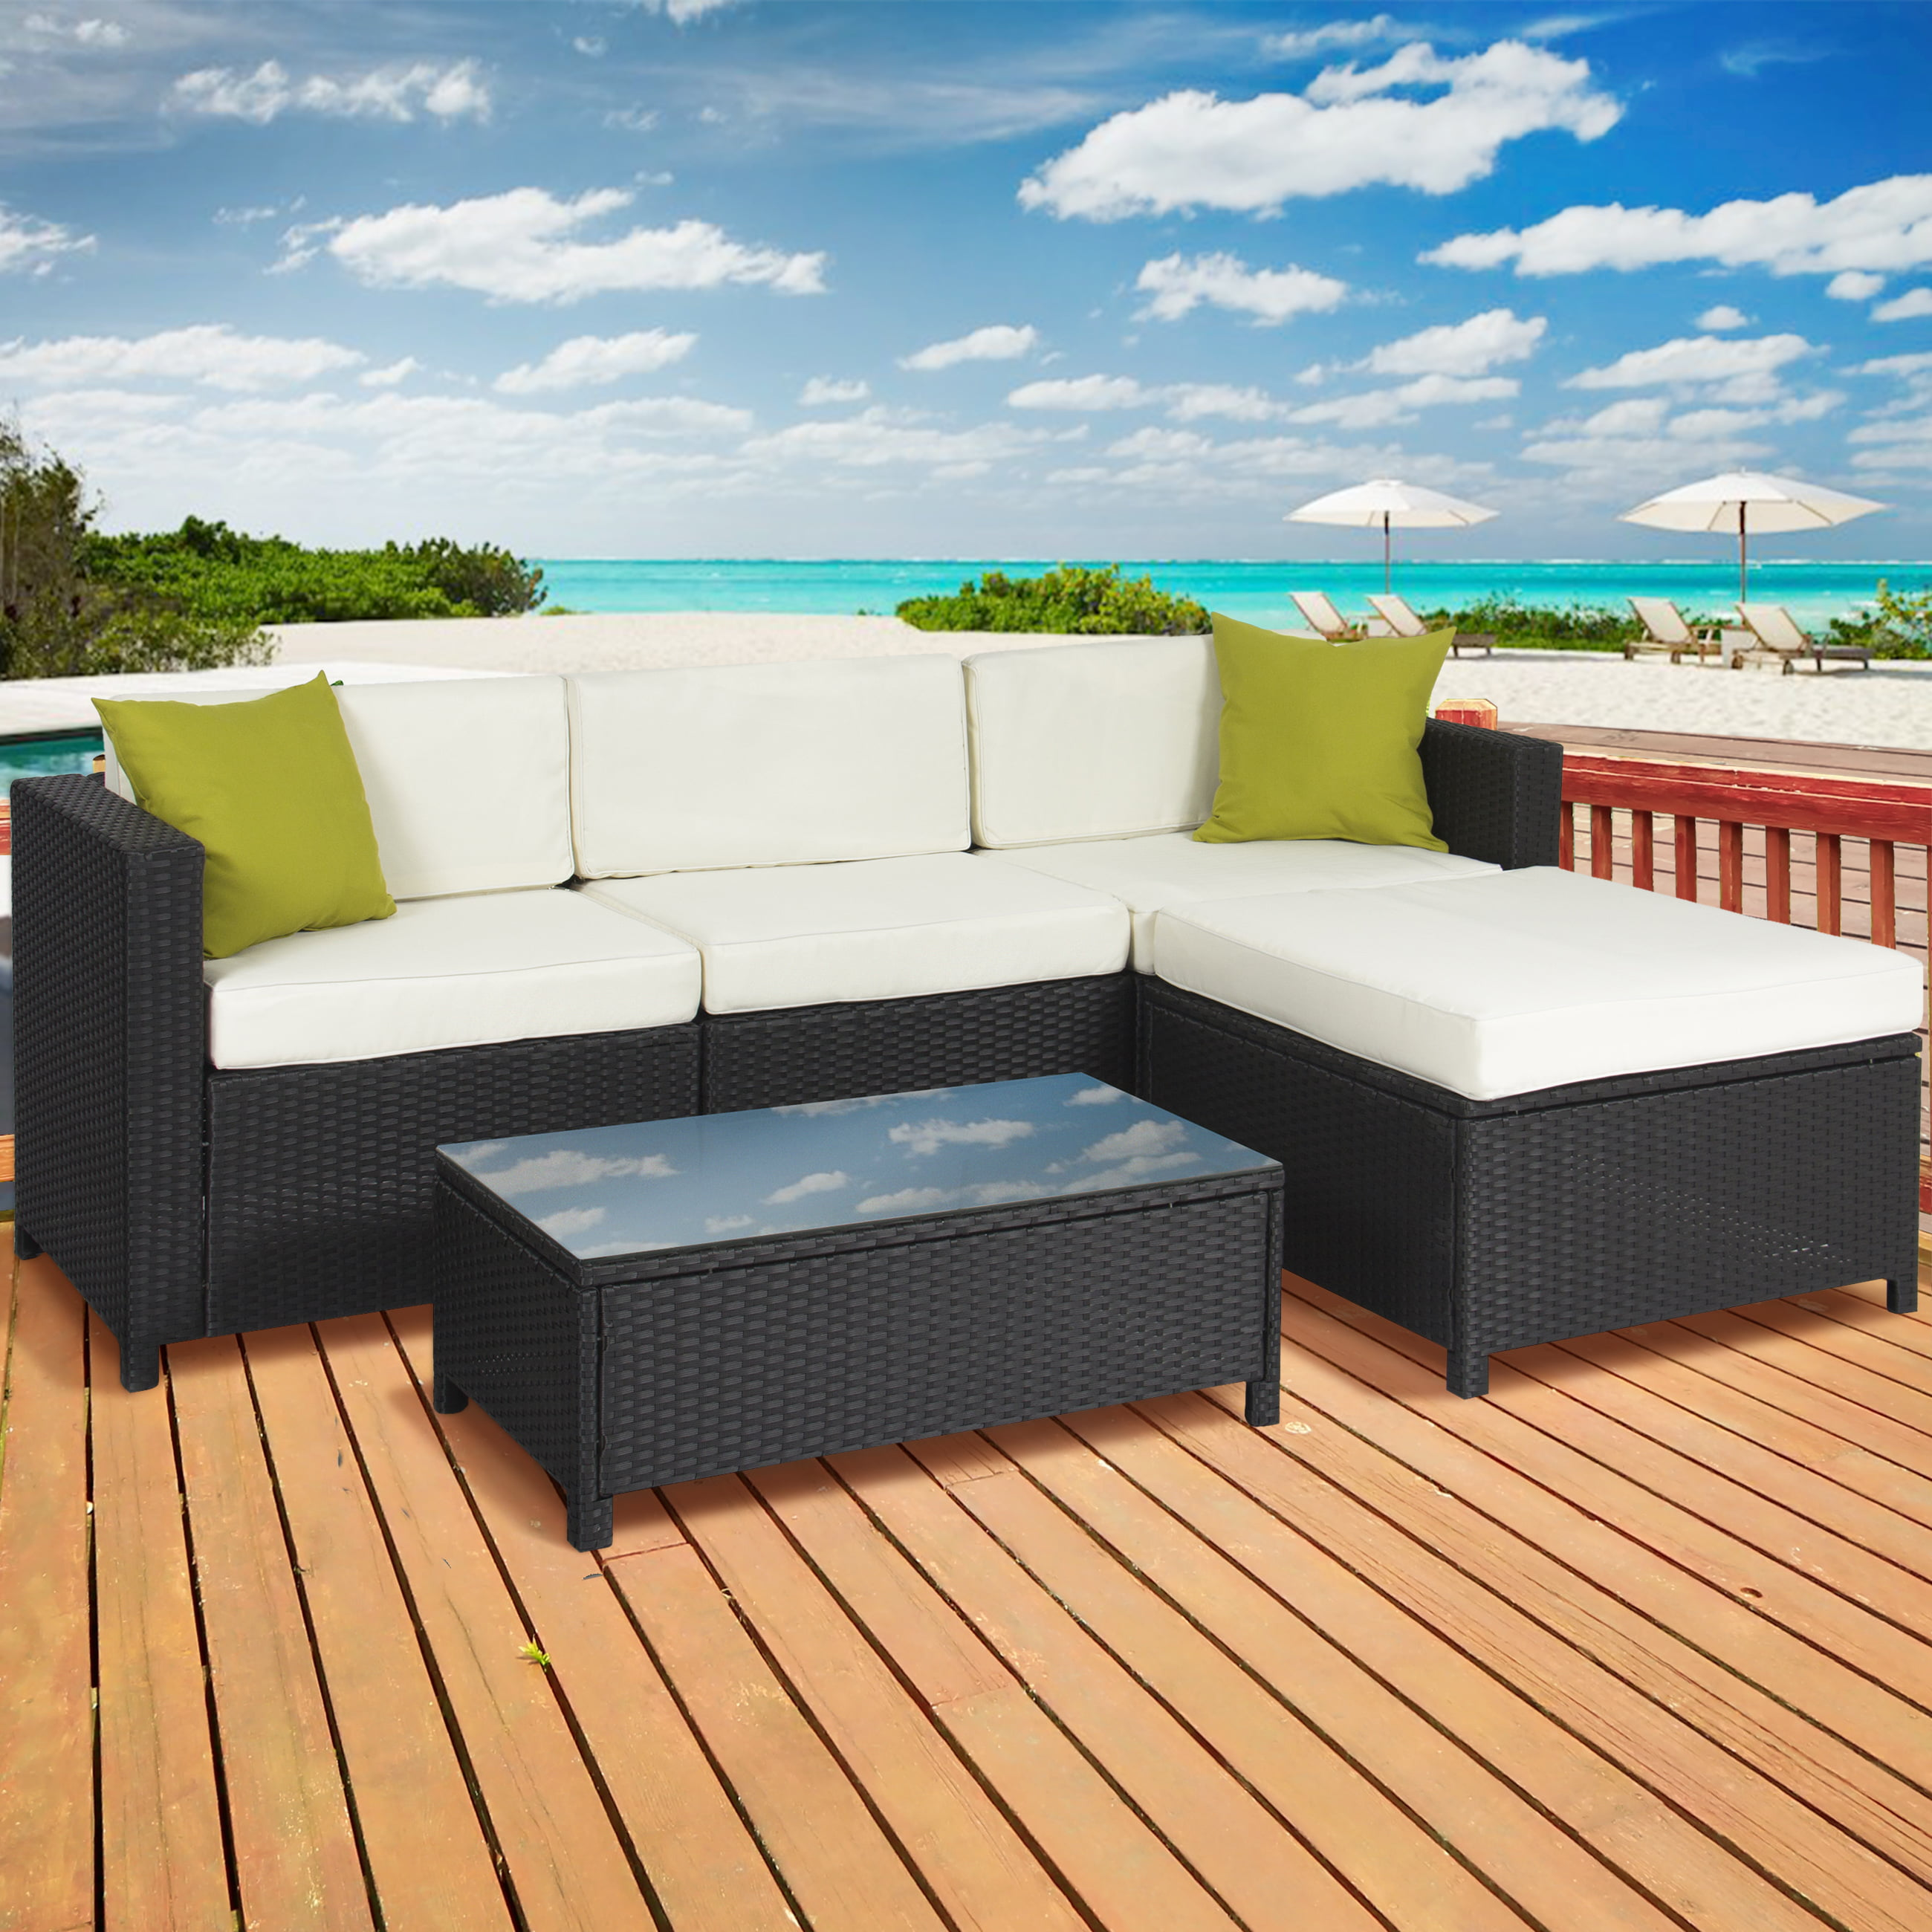 Outdoor Patio Furniture Cushioned 5PC Rattan Wicker Aluminum Frame  Sectional Sofa Set   Walmart com. Outdoor Patio Furniture Cushioned 5PC Rattan Wicker Aluminum Frame